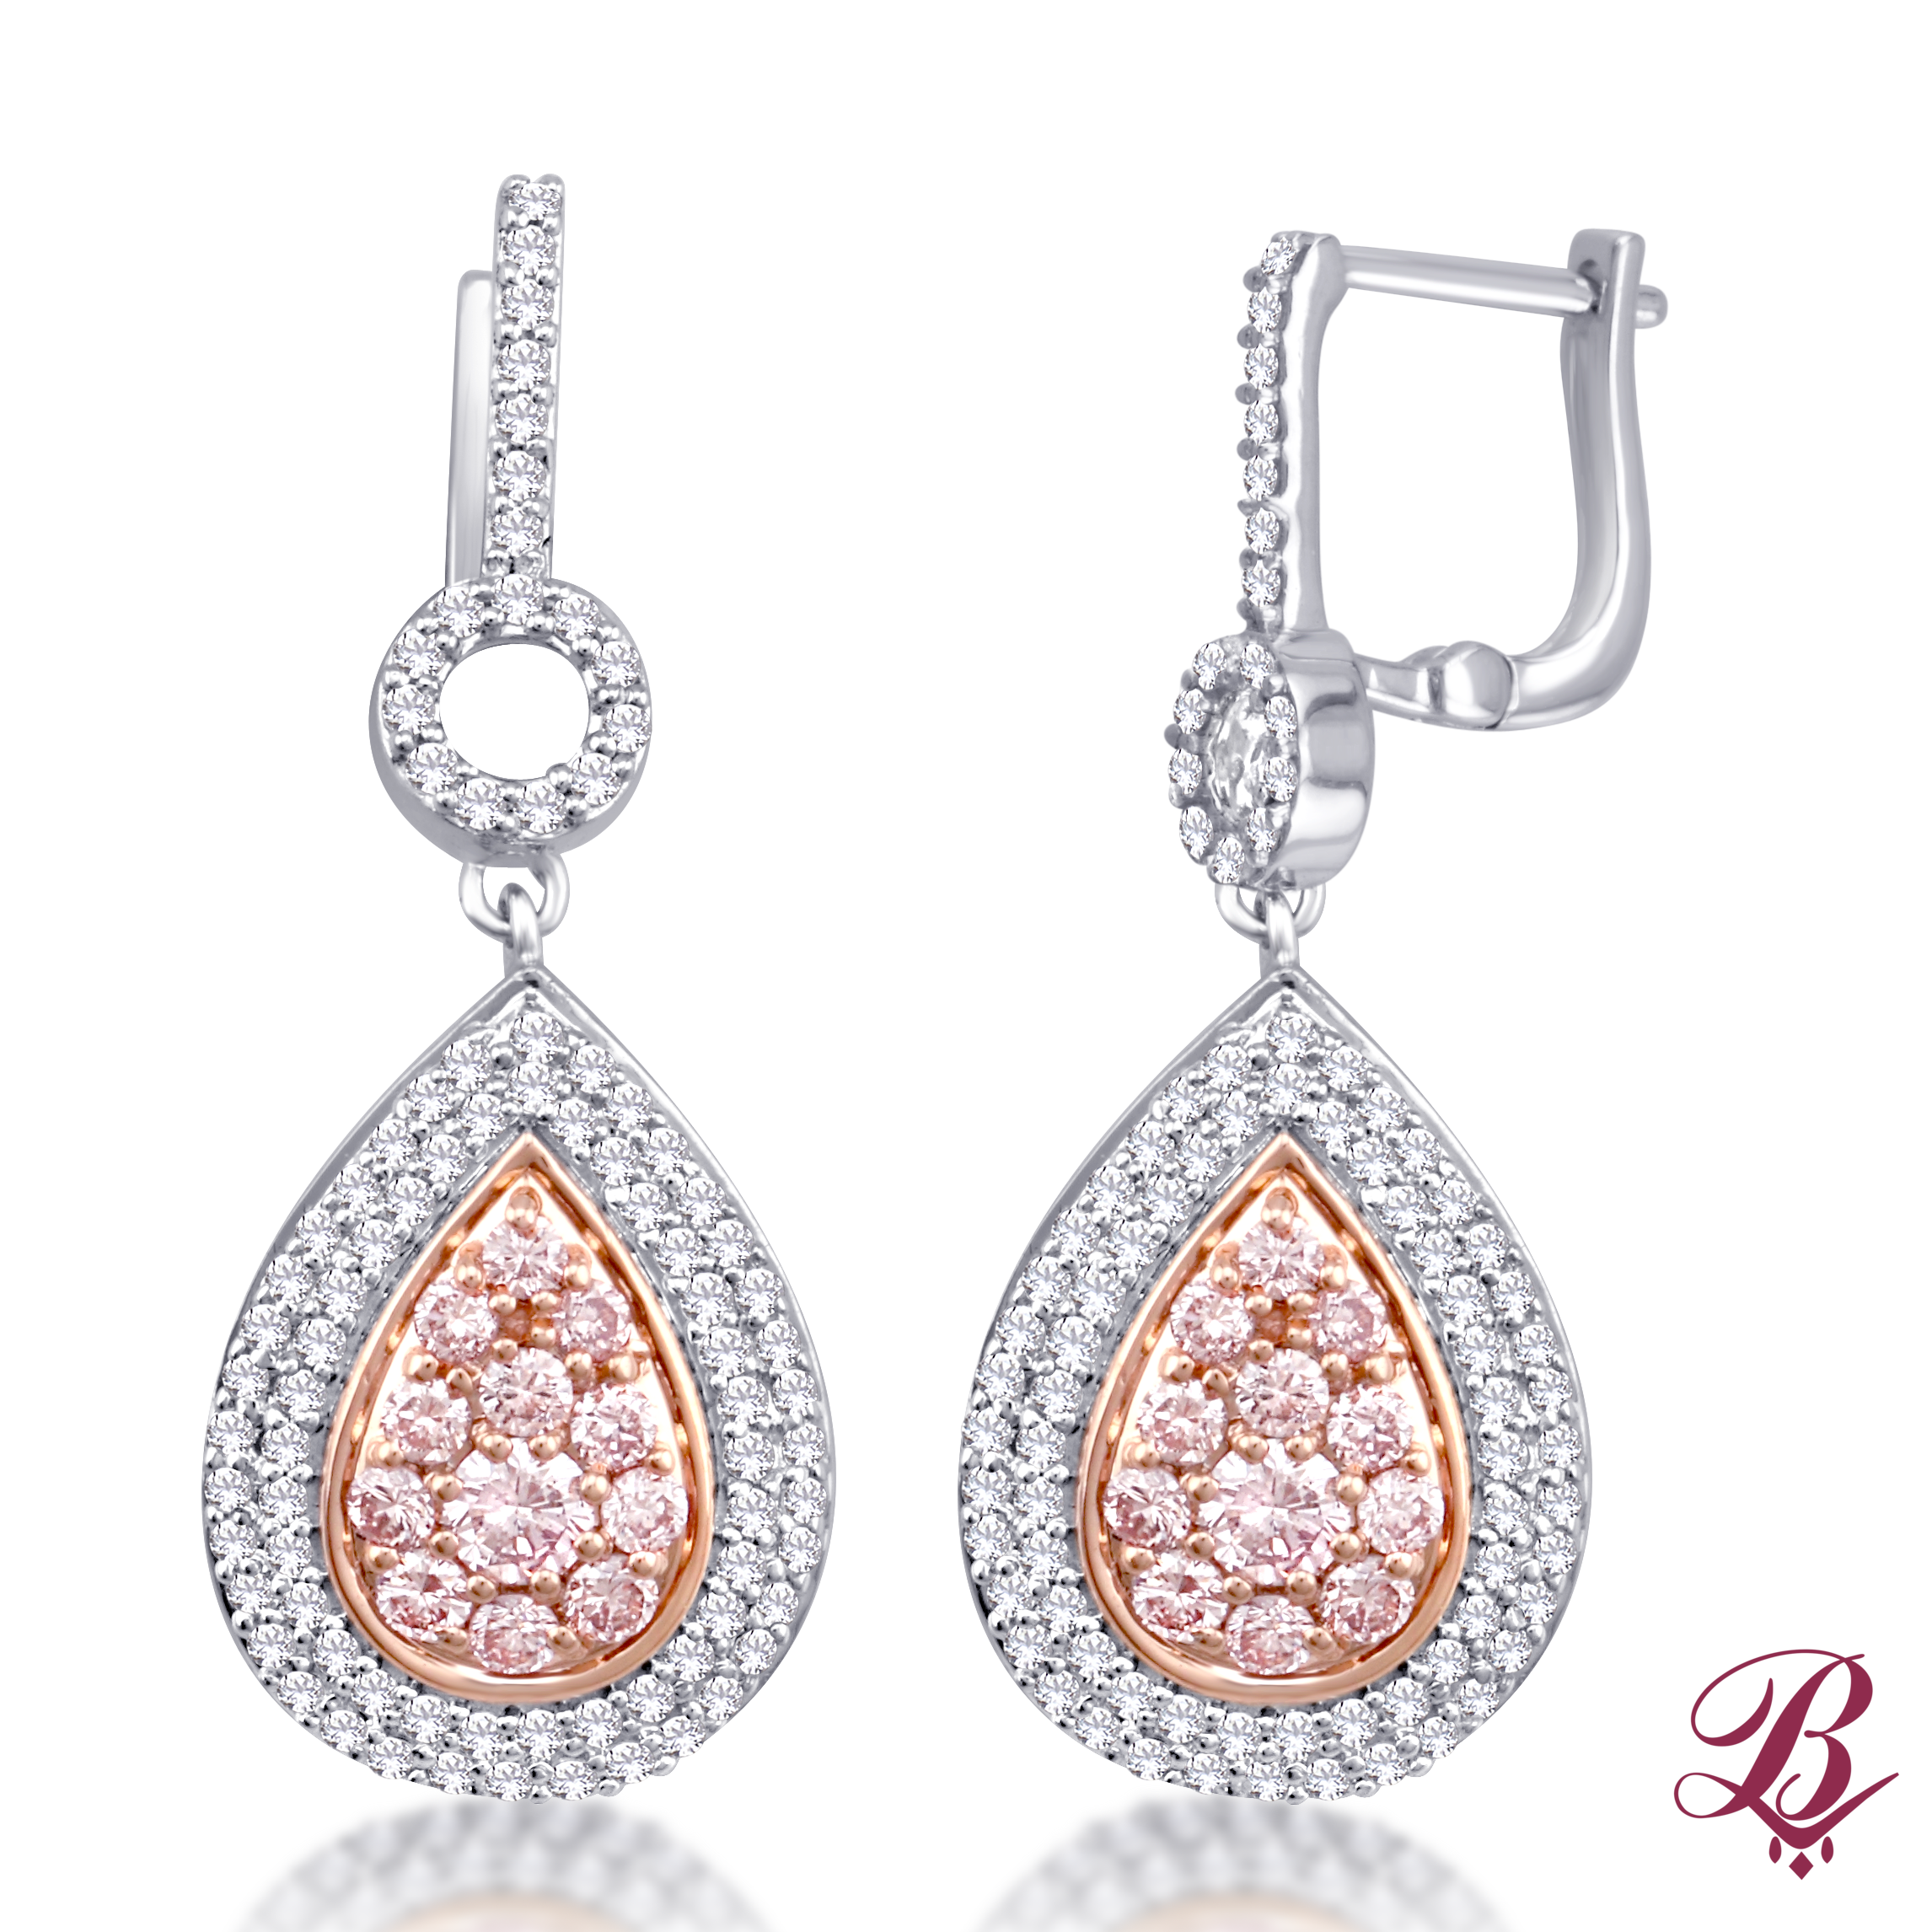 shaped diamonds g white out of gold shape pear h color product earrings sold center